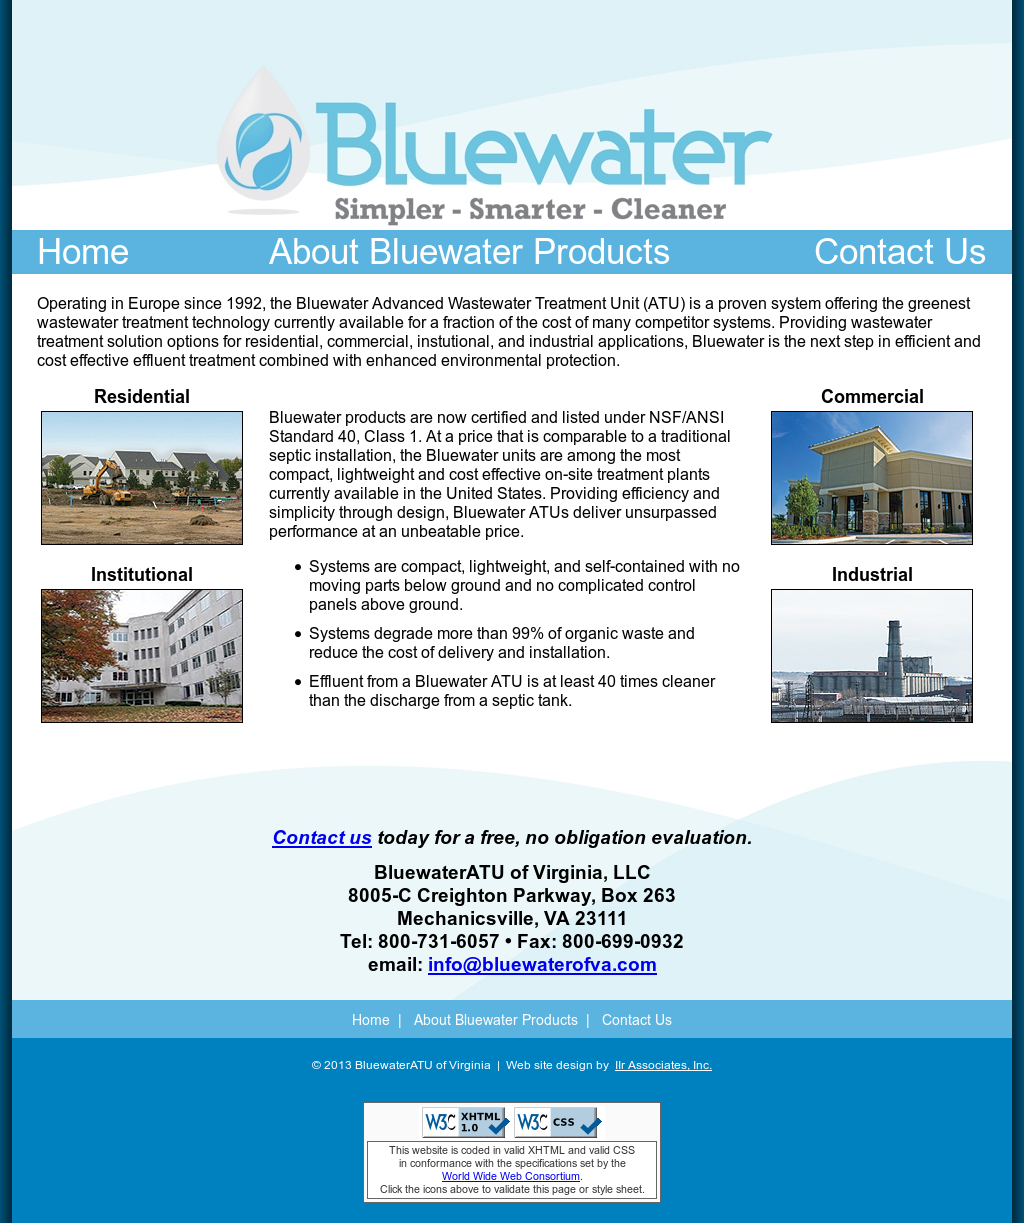 Bluewater Atu Of Virginia Competitors, Revenue and Employees